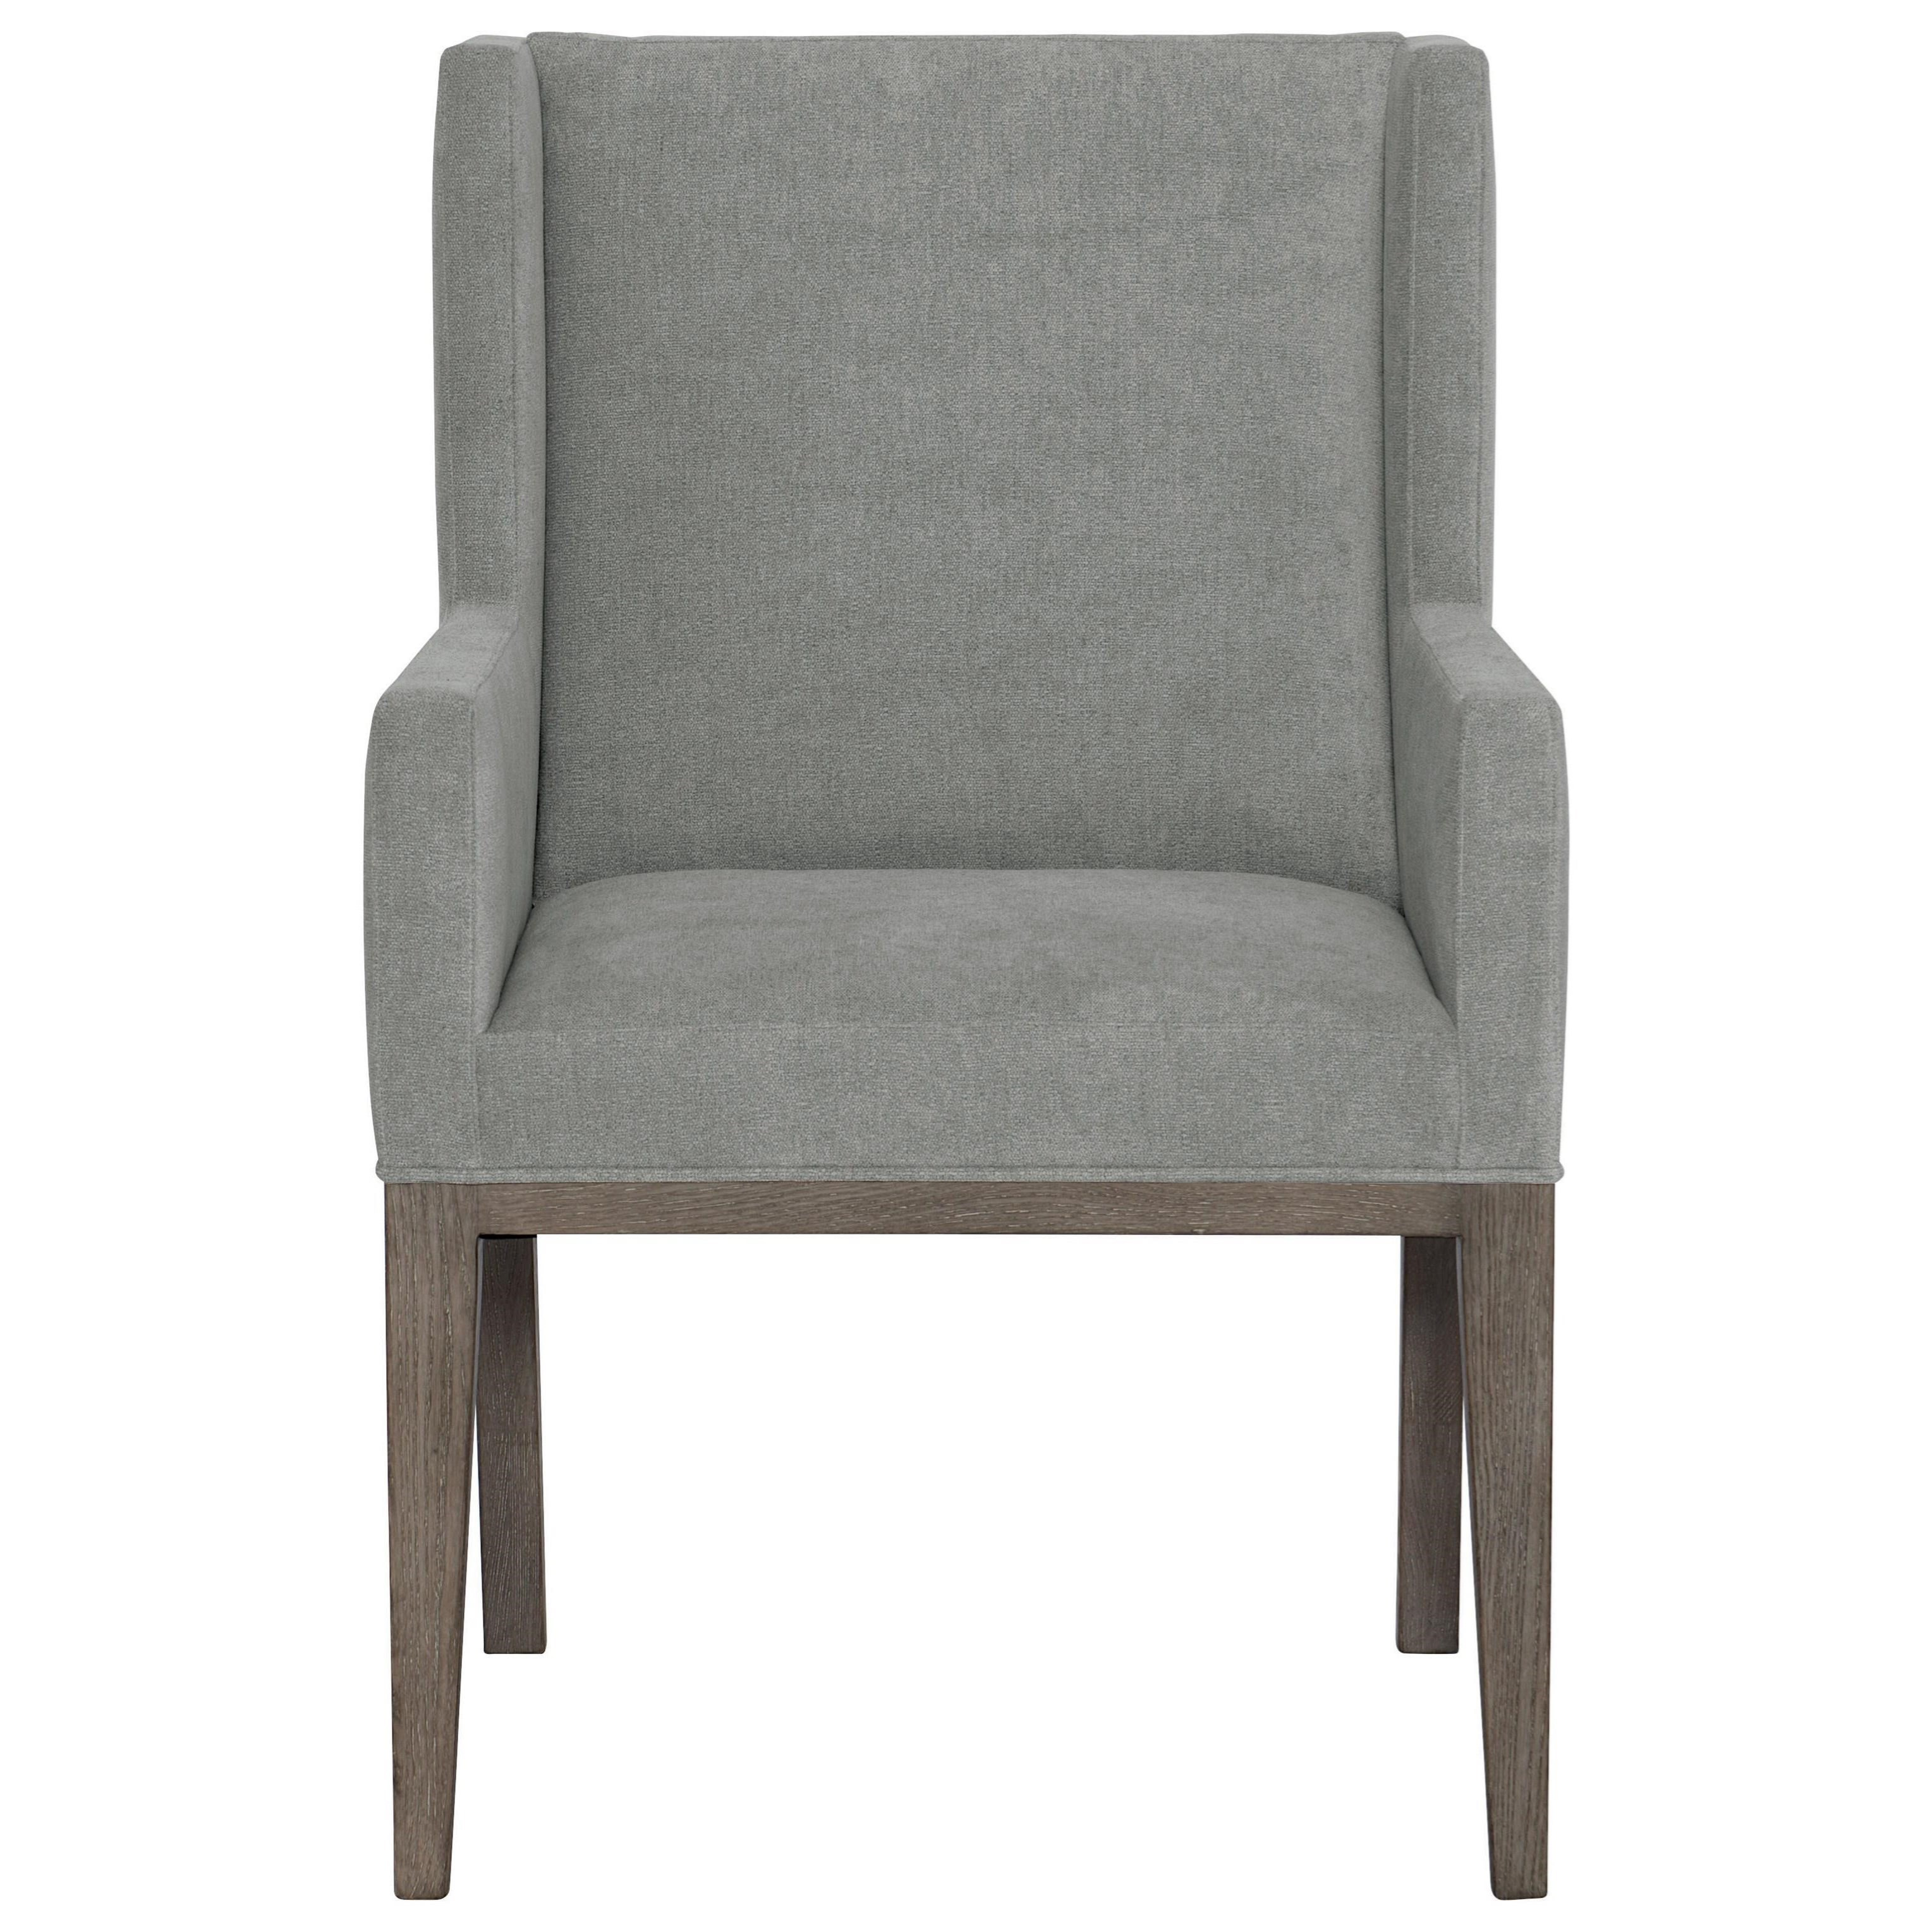 Linea Upholstered Arm Chair by Bernhardt at Darvin Furniture